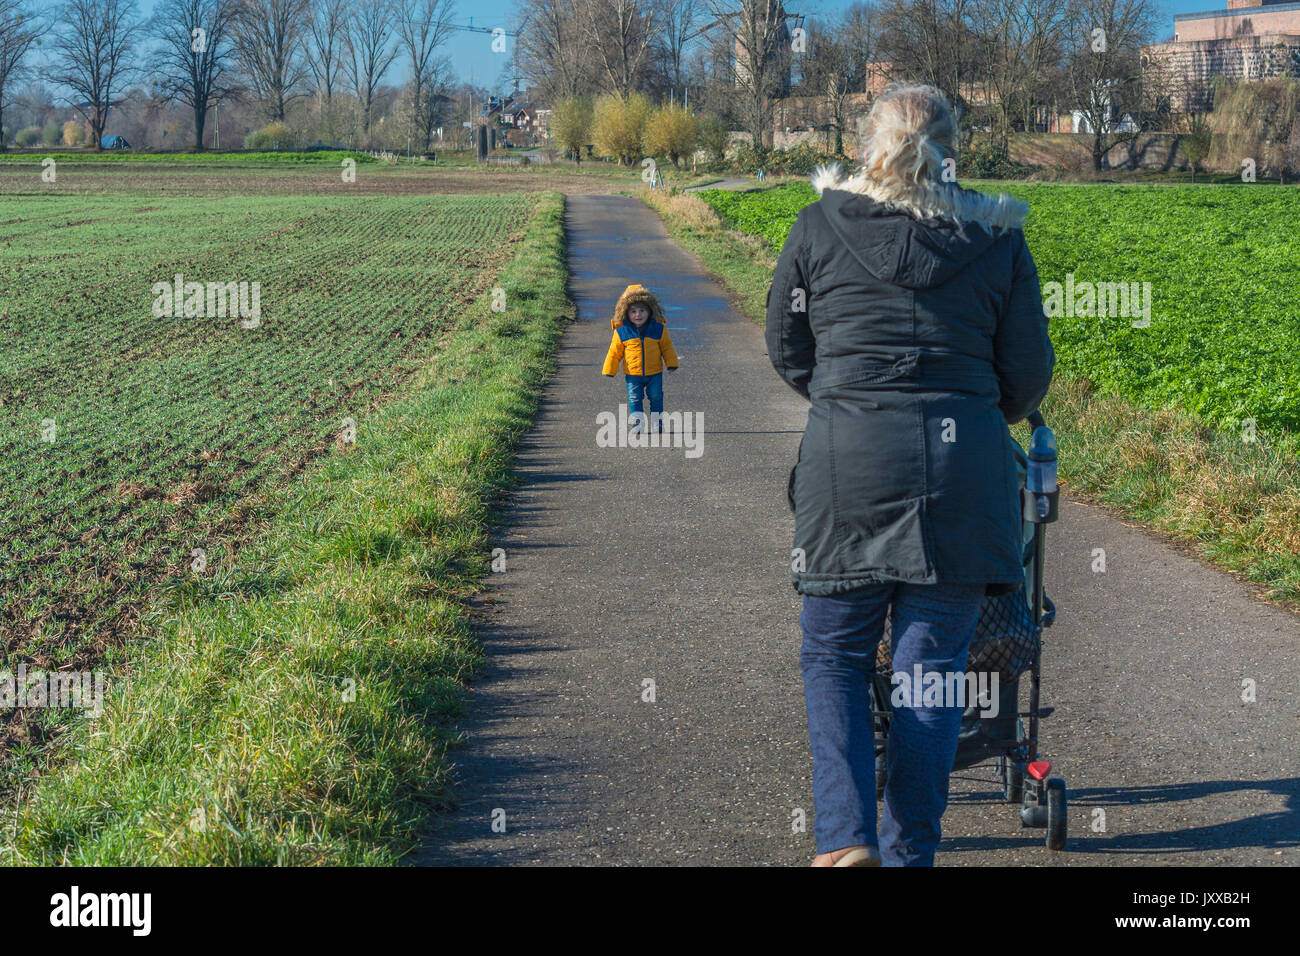 Grandmother with grandson while walking and pushes a baby carriage. - Stock Image